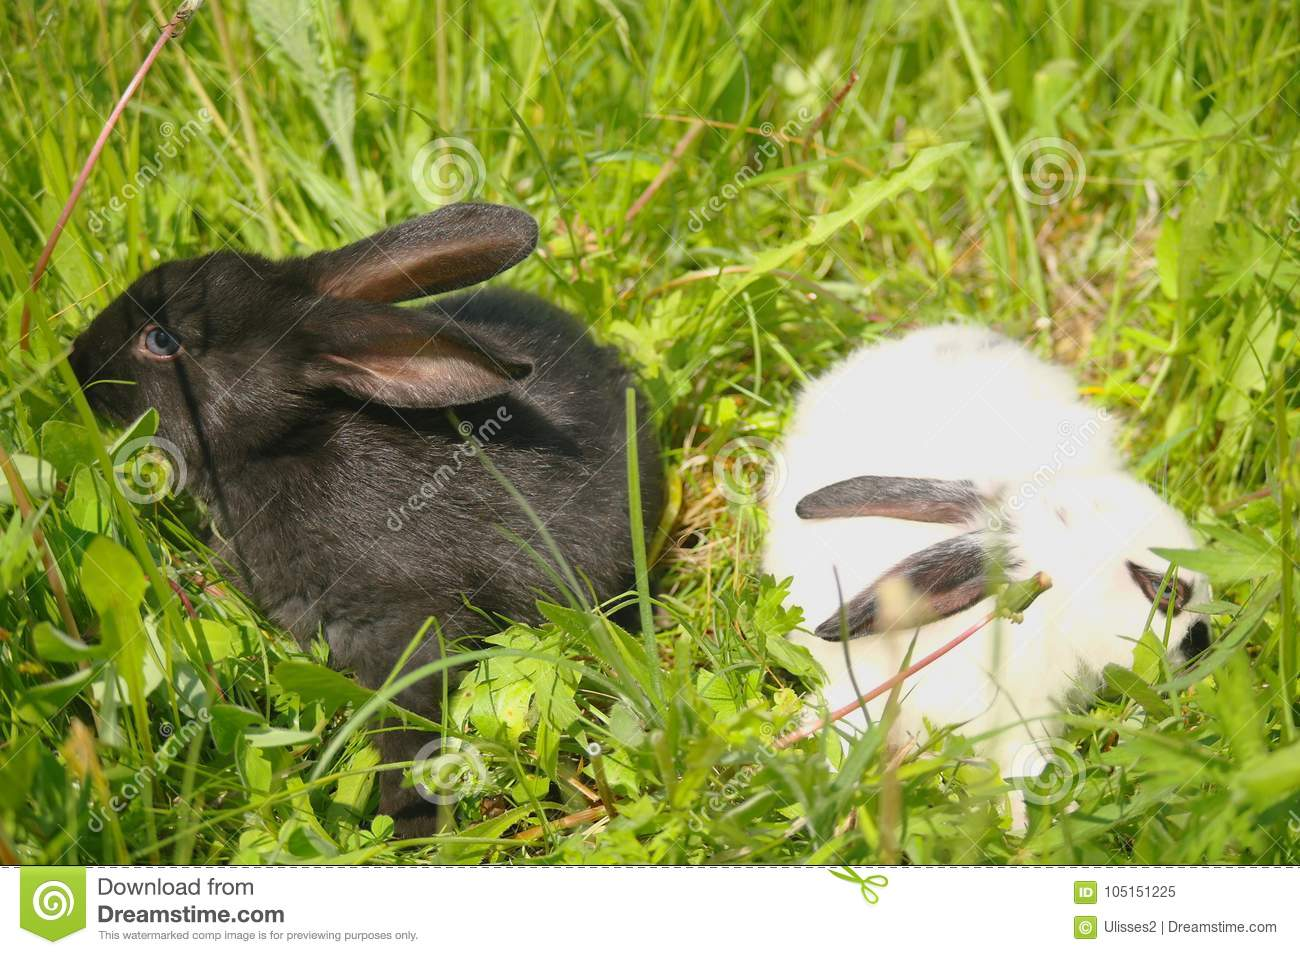 What does the white rabbits dream about